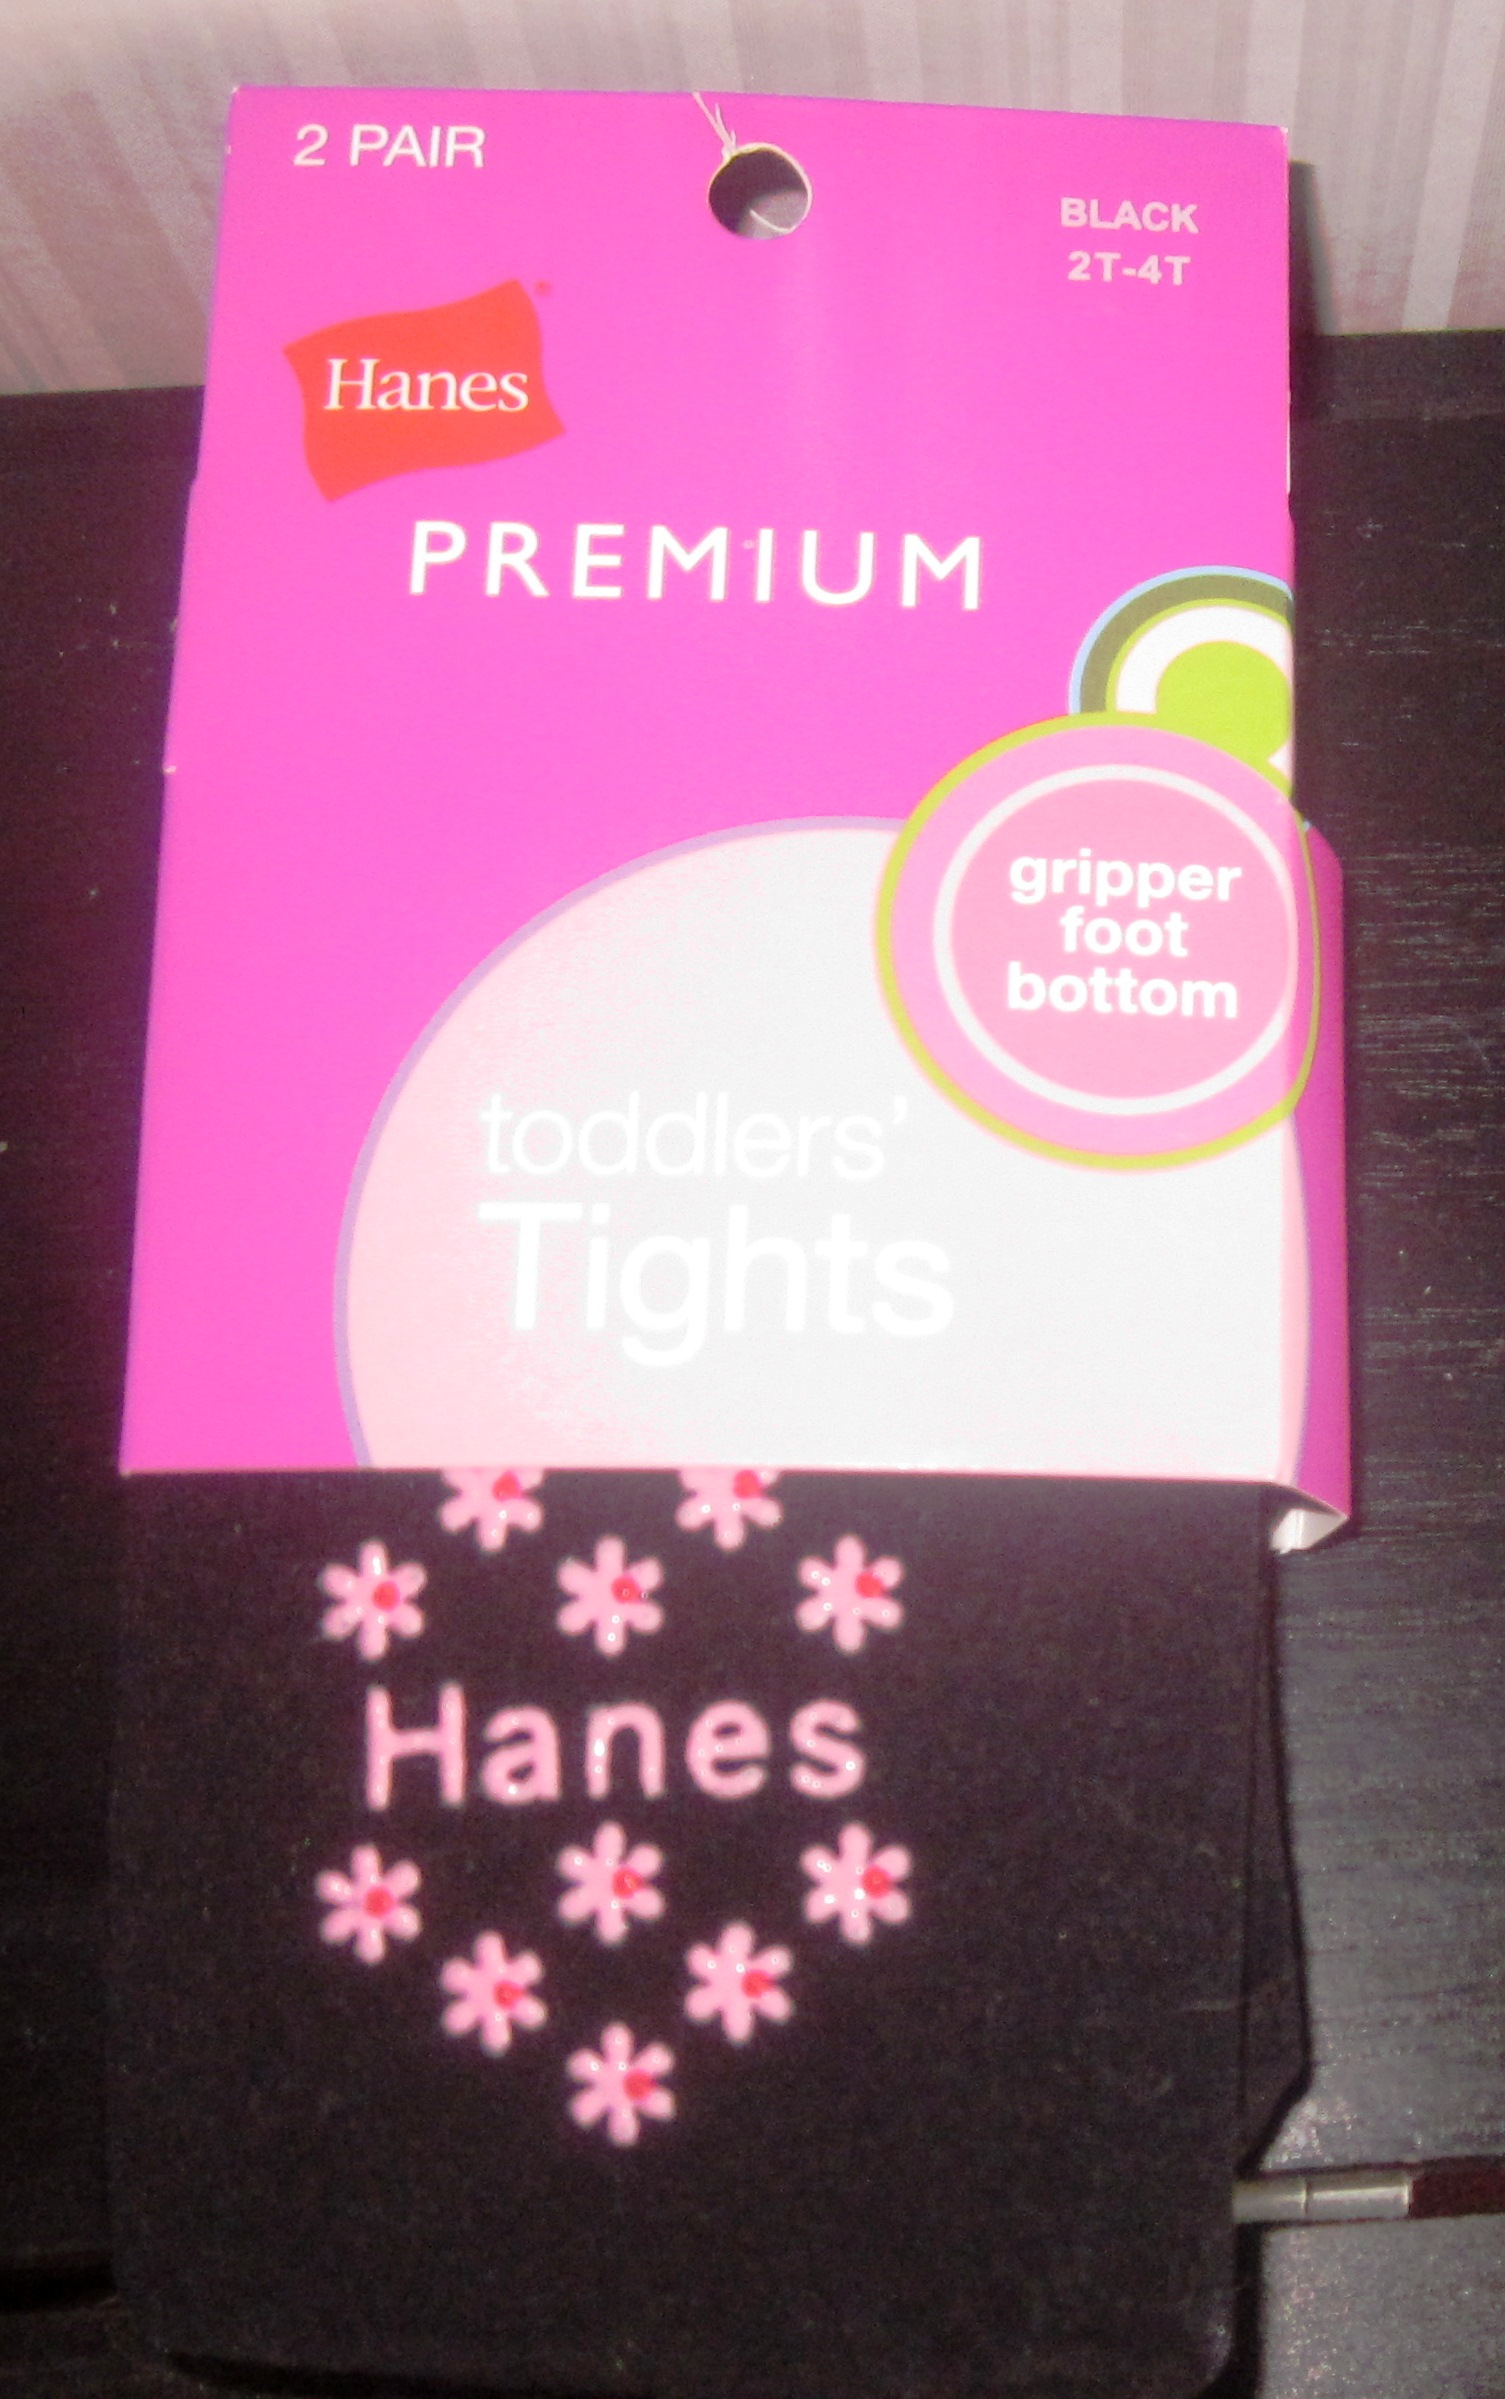 Hanes Infant Tights Black 0-9 Grip Foot